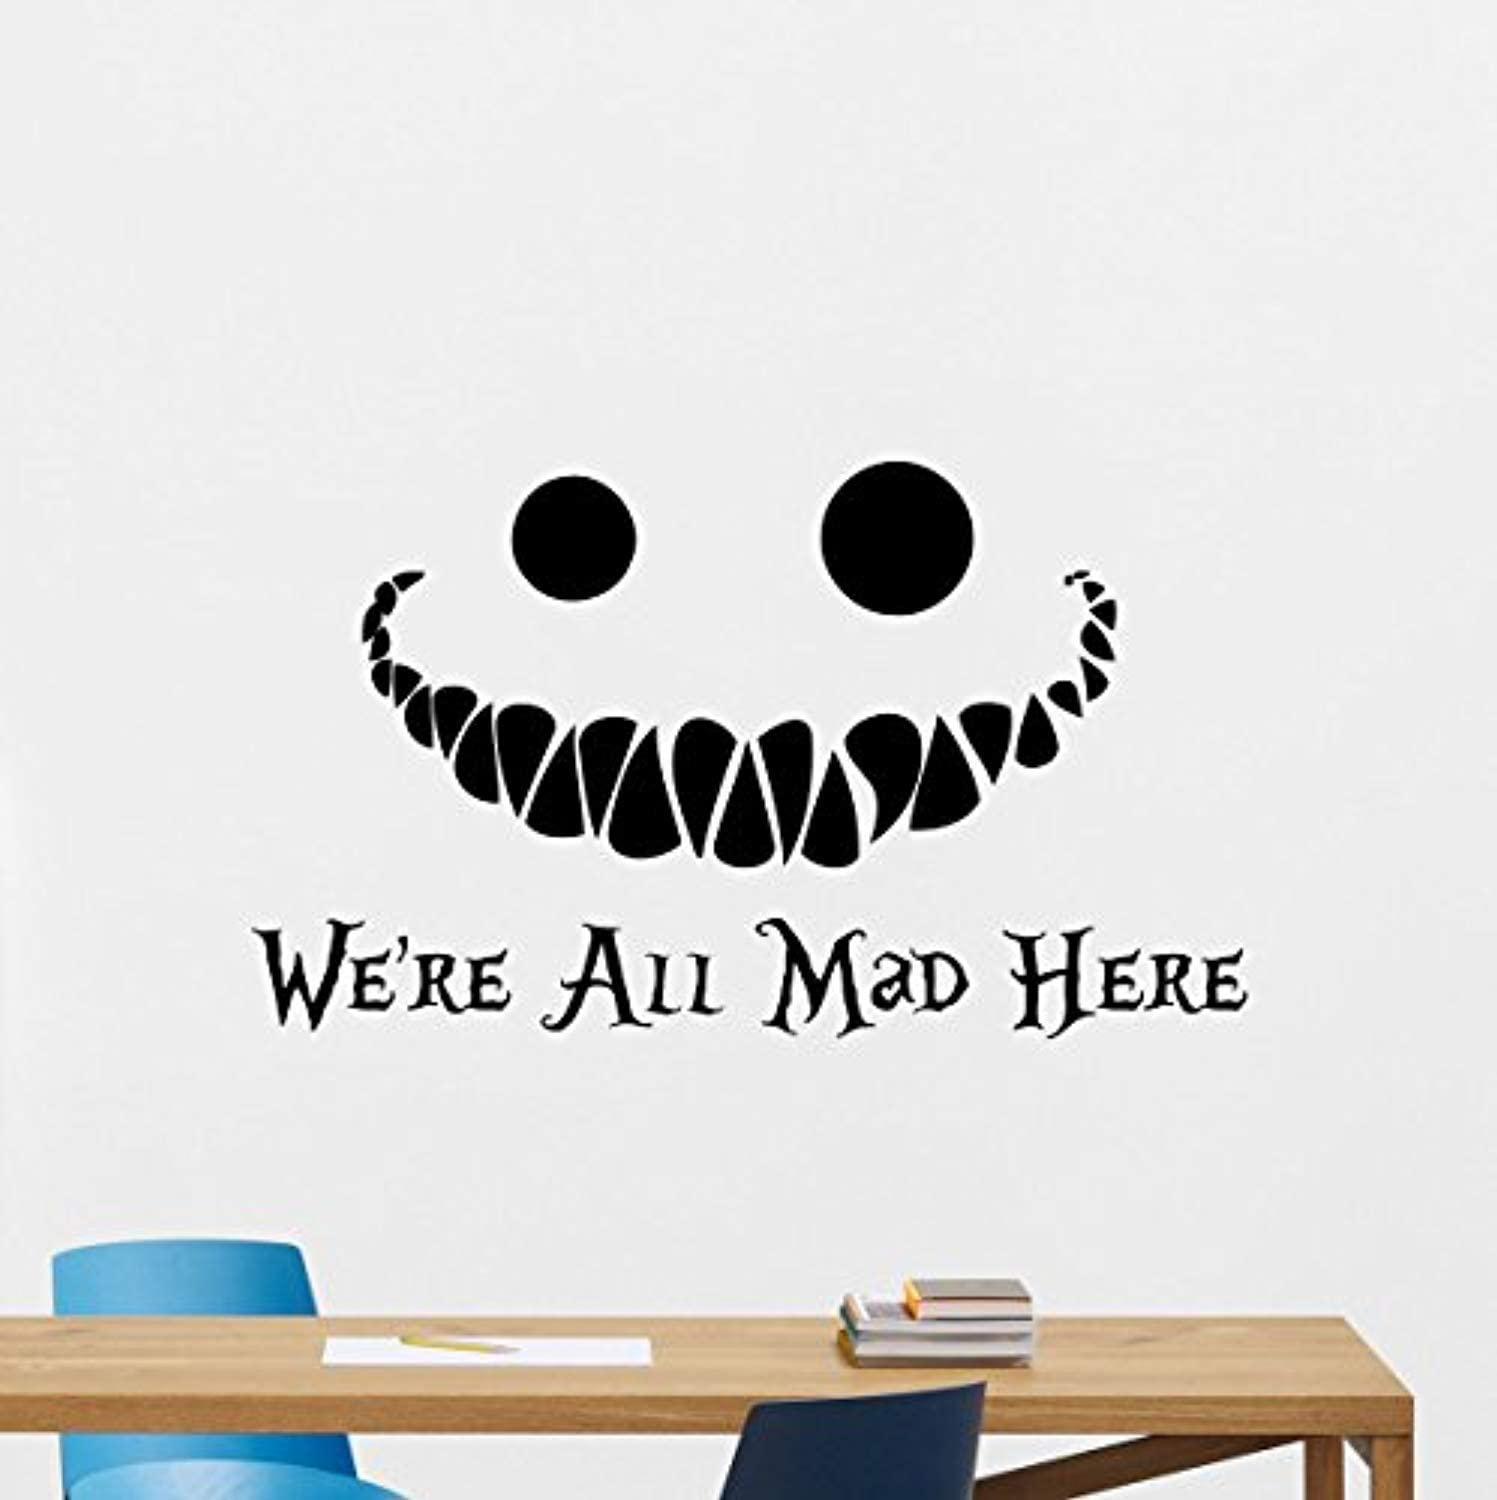 Alice In Wonderland Cheshire Cat Vinyl Car Cartoon Windows Wall Sticker Decor